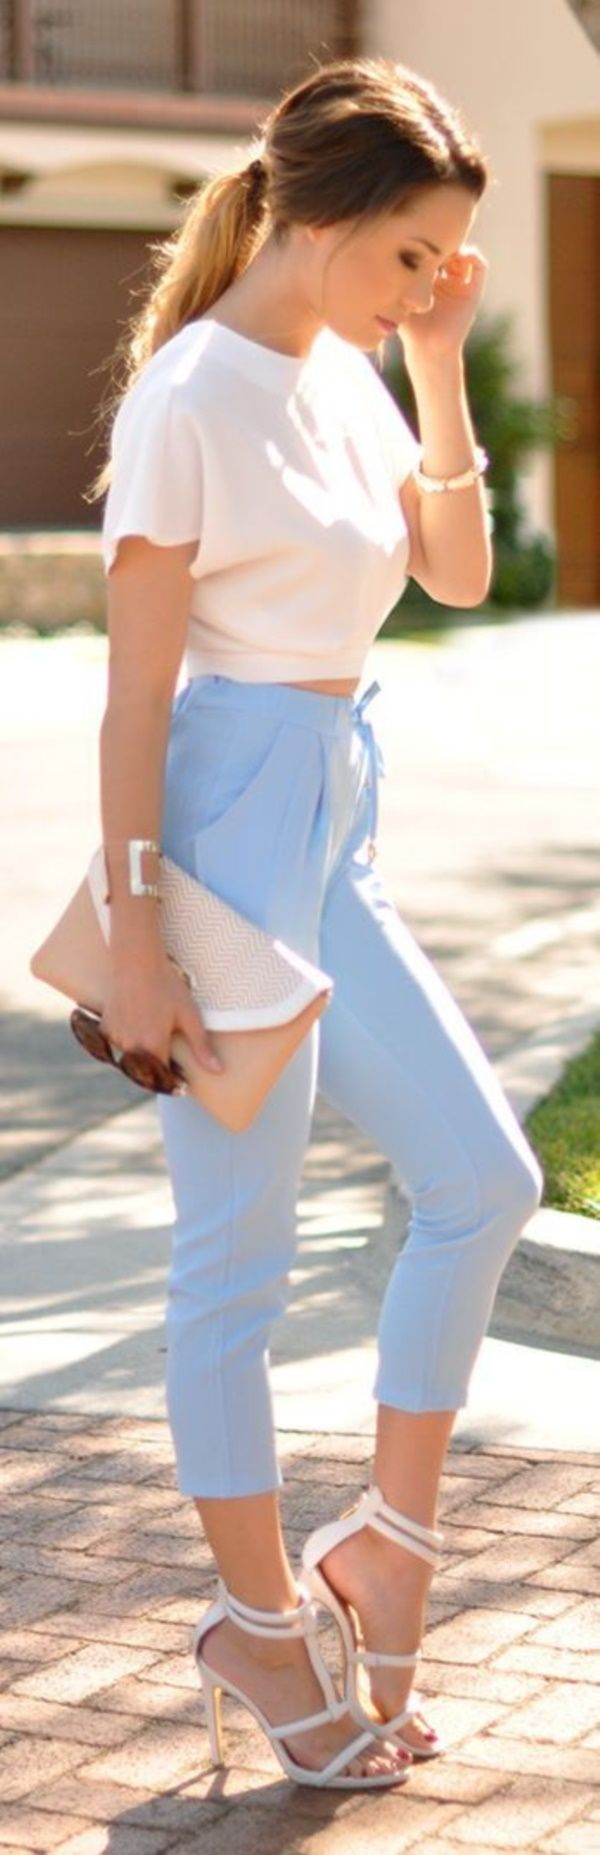 0447a47a58c 40 Pretty spring outfits for teen girls to Try in 20160021